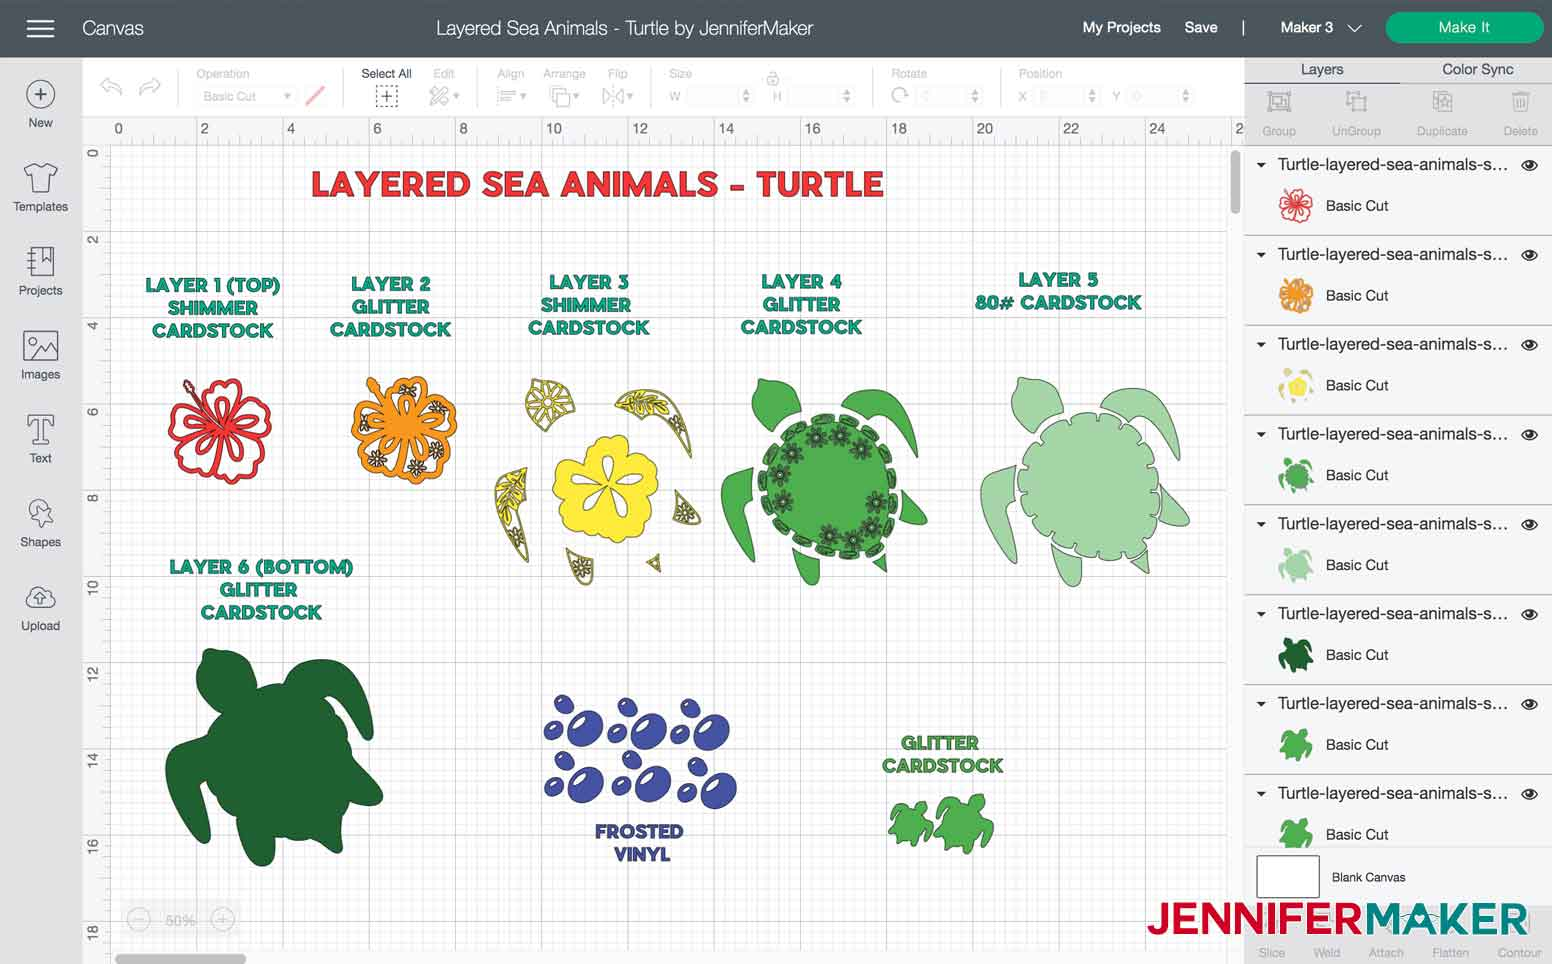 Layers and materials used to make Turtle Layered Sea Animal